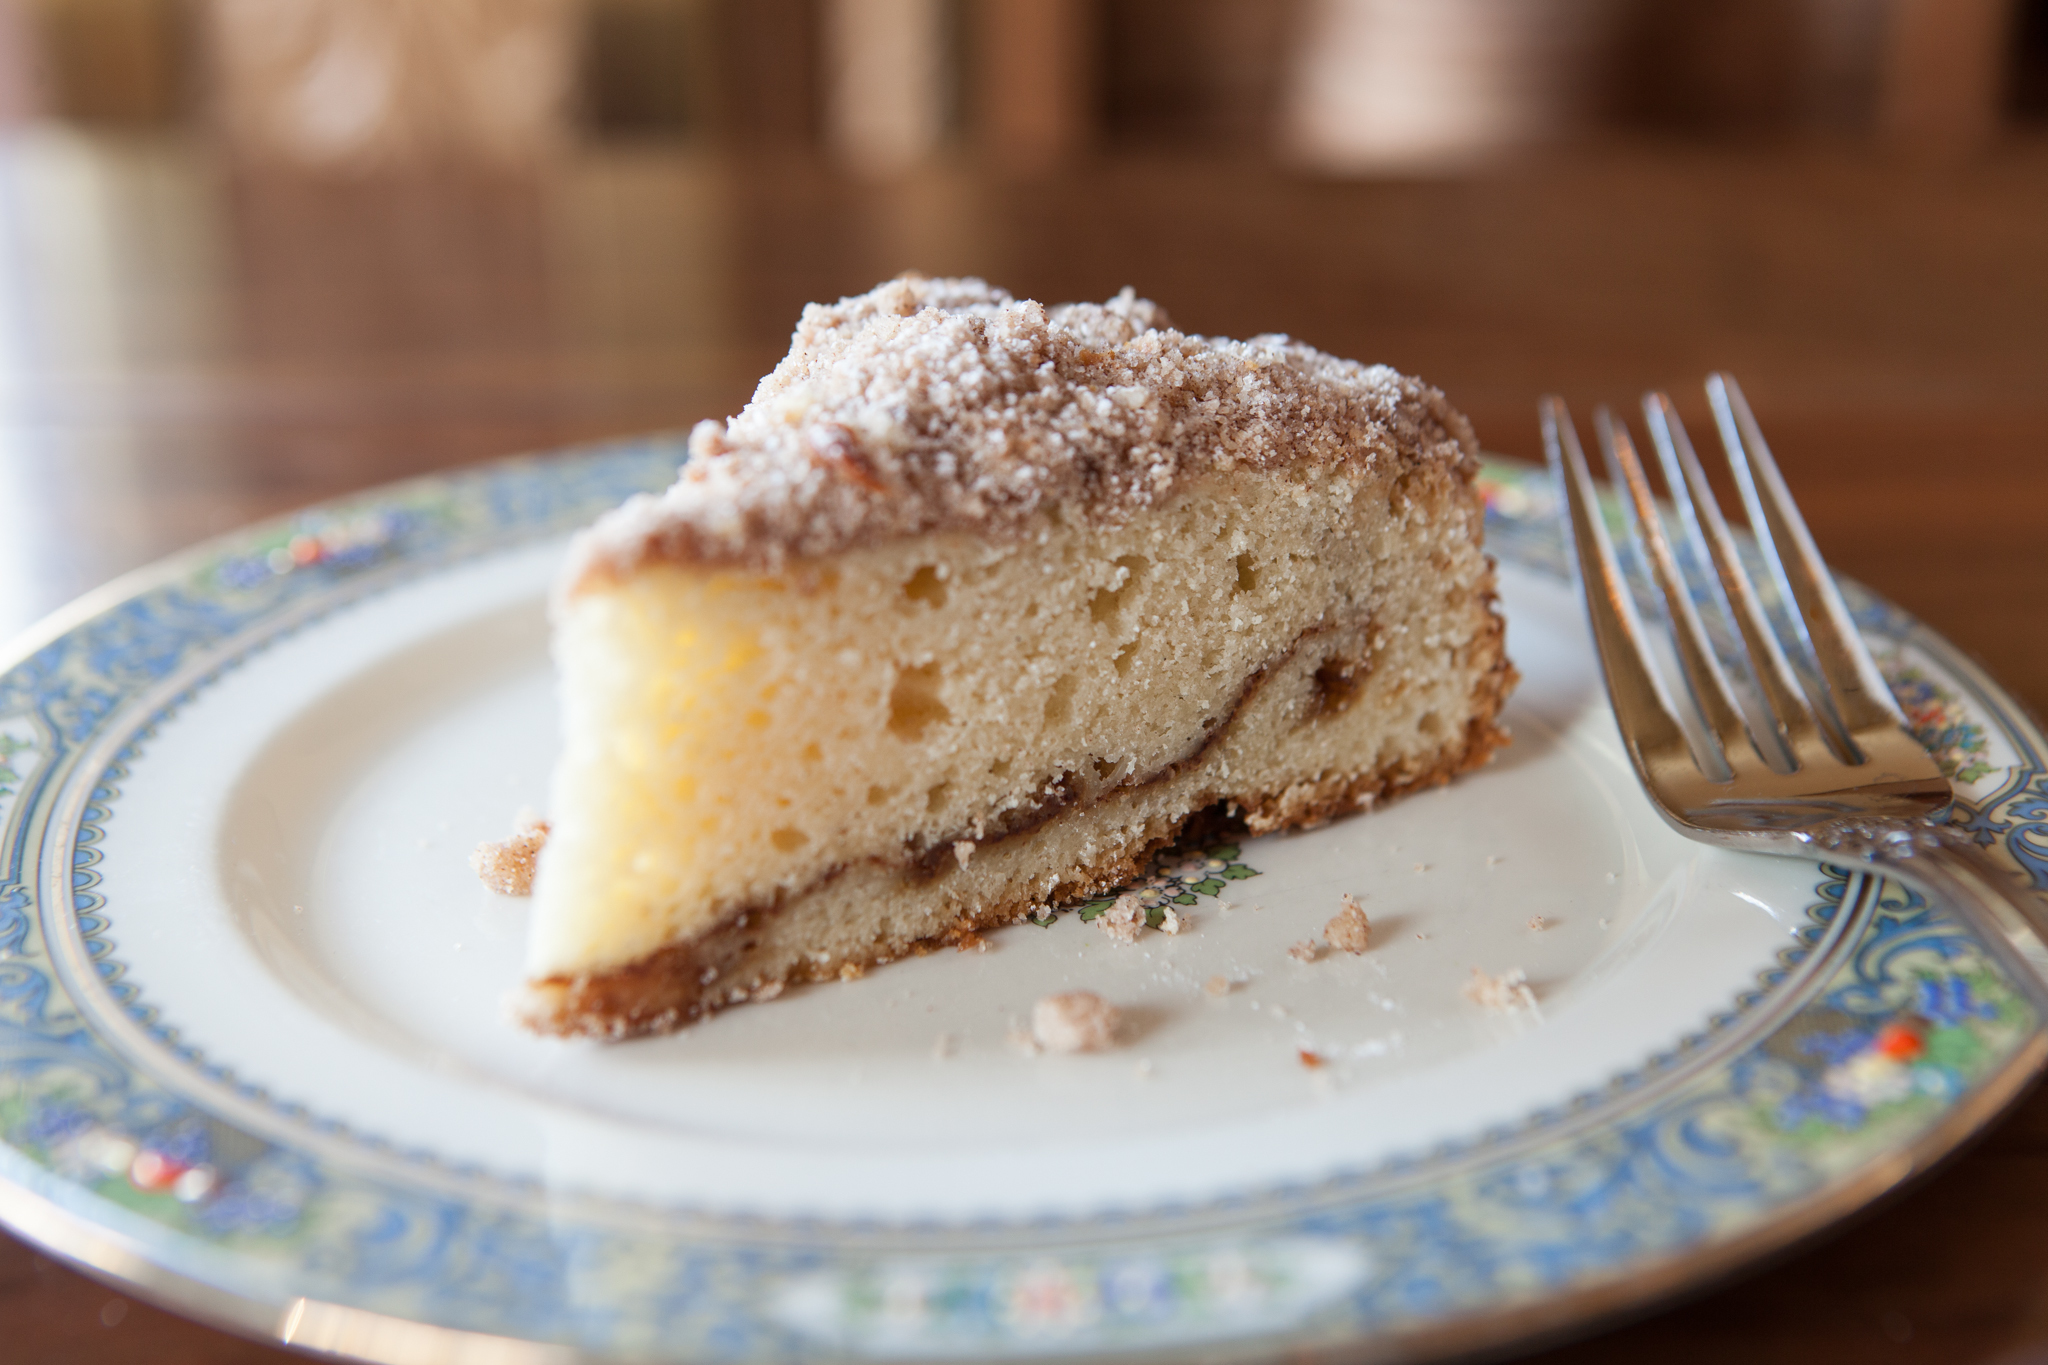 Cinnamon streusel coffee cake at the Publican